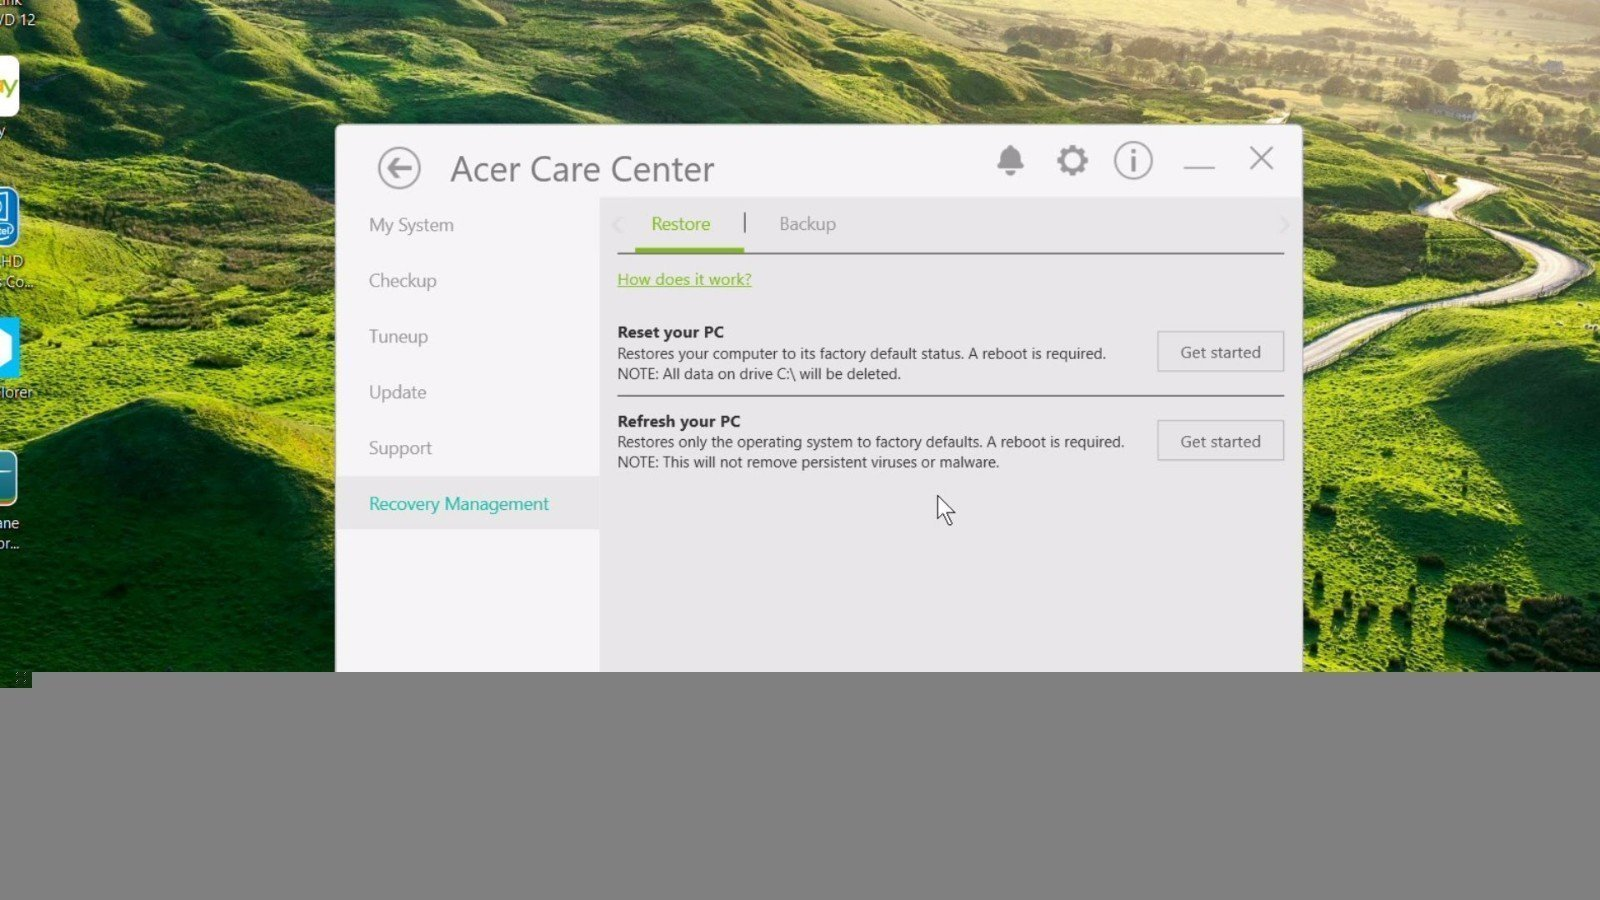 Acer Care Center Recovery Management